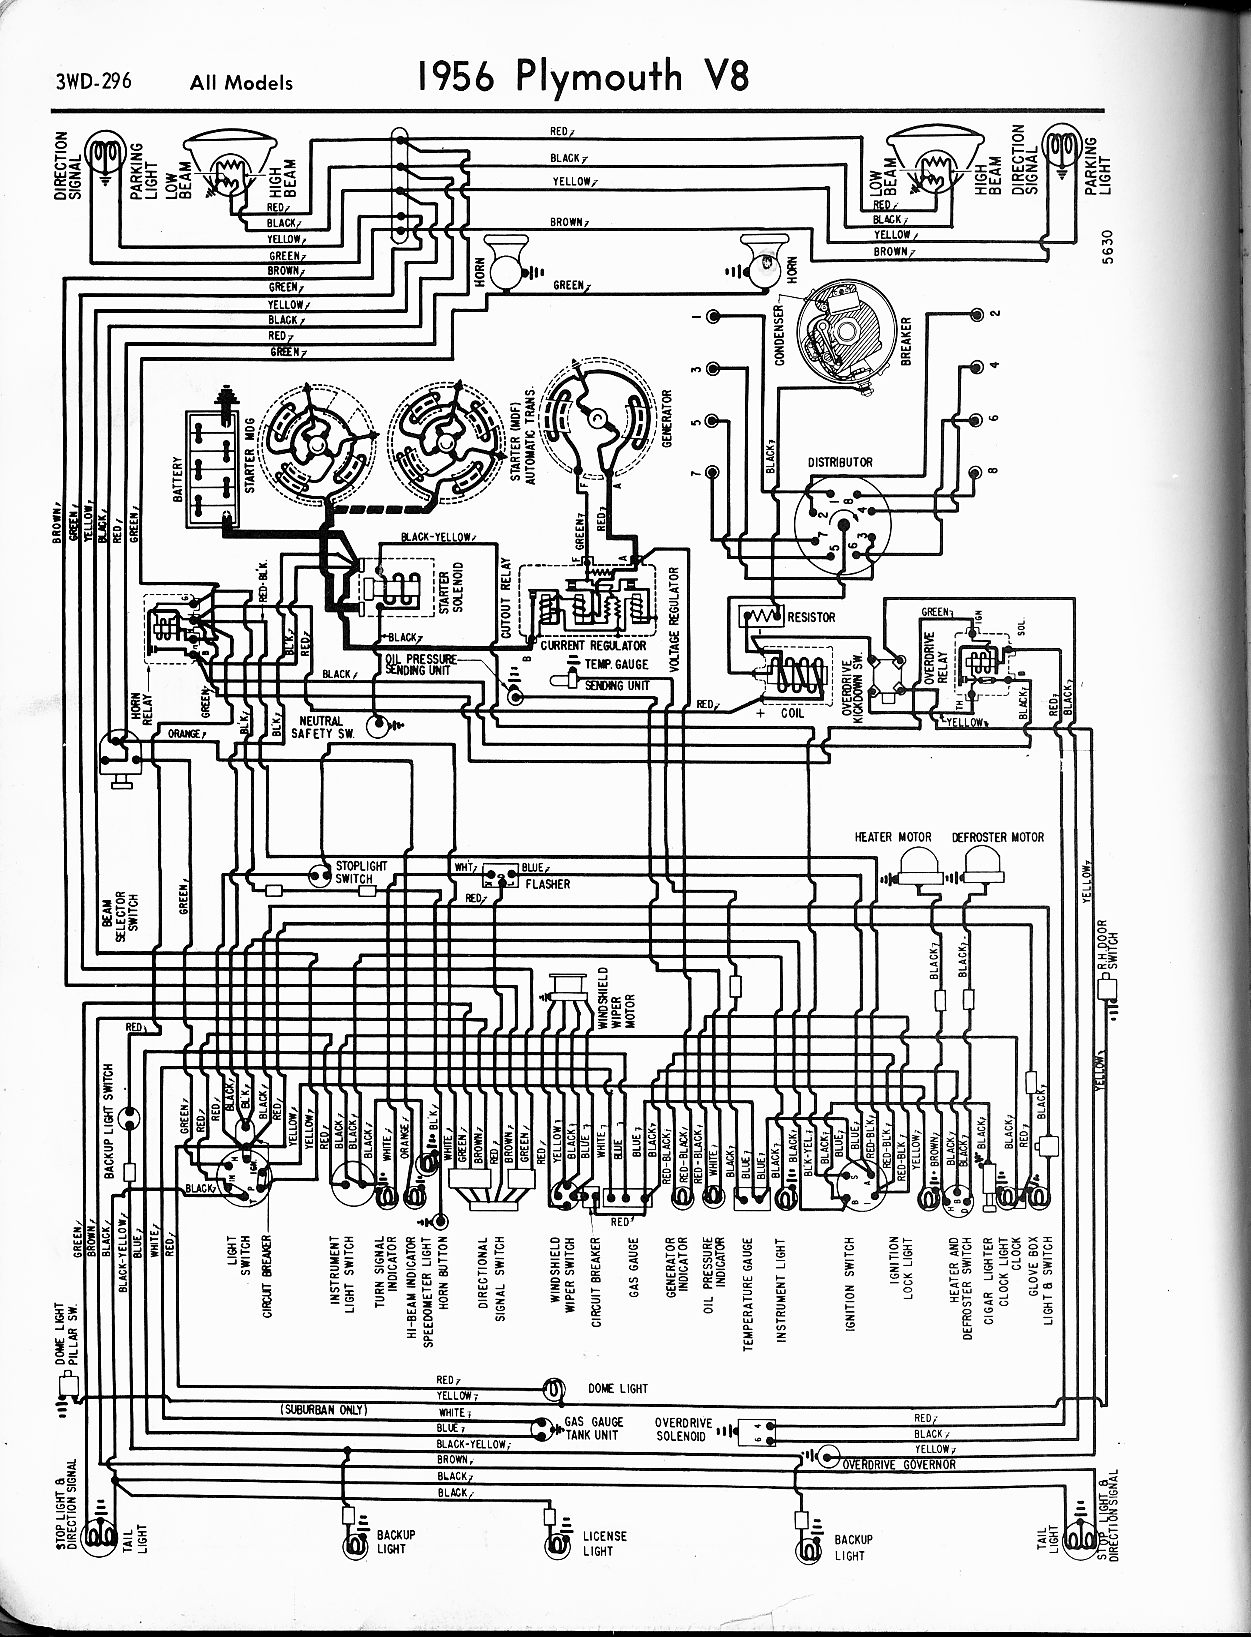 56 Pontiac Wiring Diagram | Wiring Diagram on